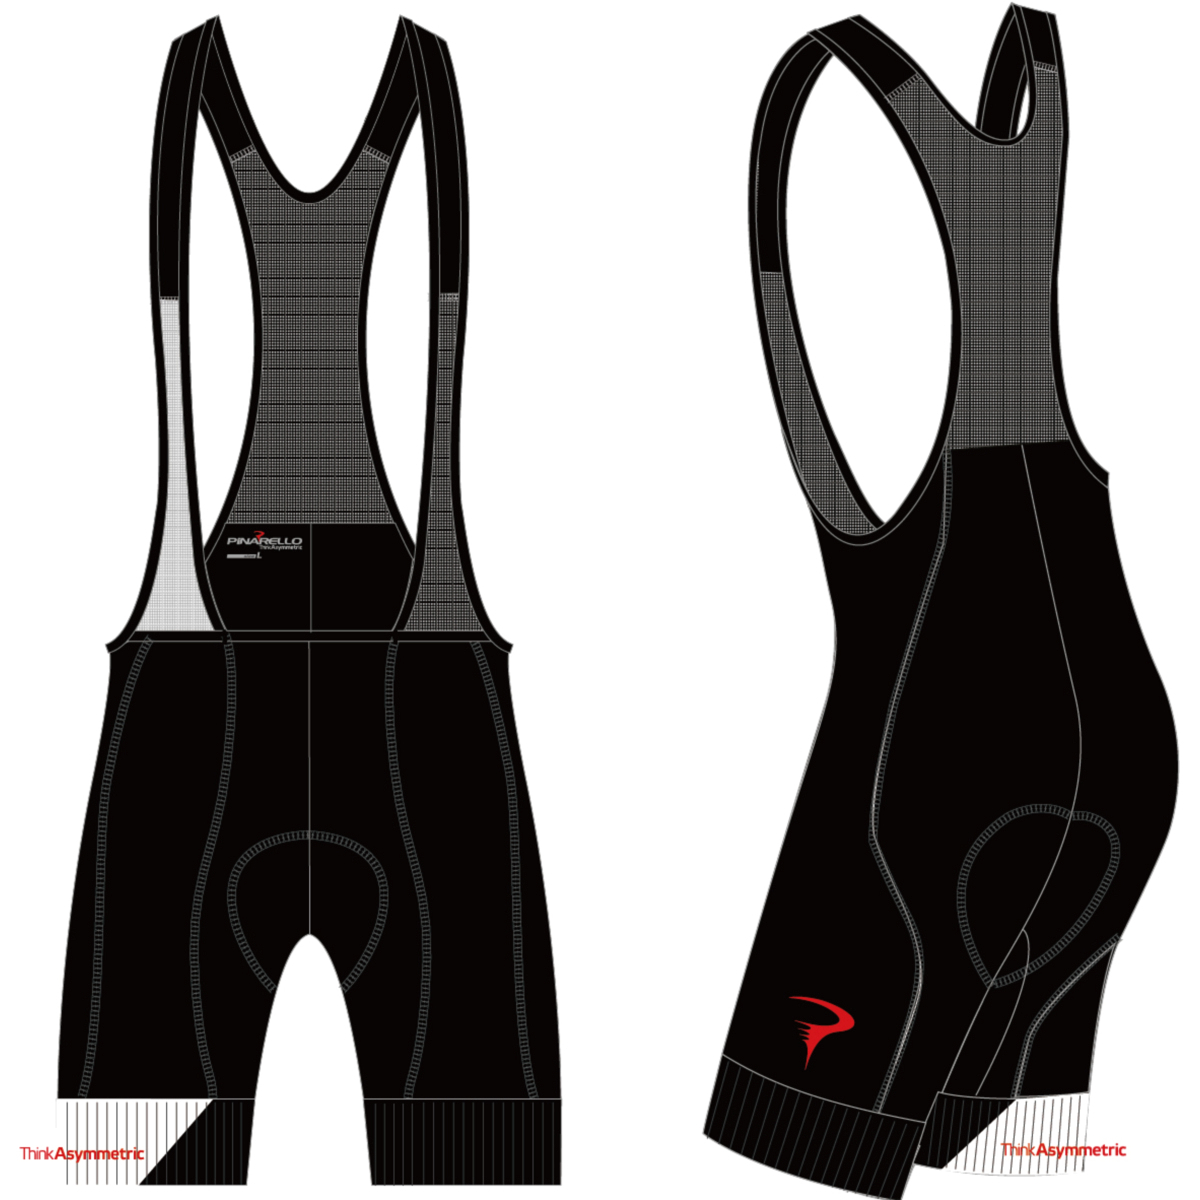 ピナレロ Dual Gripper Bibshorts(Think Asymmetric)